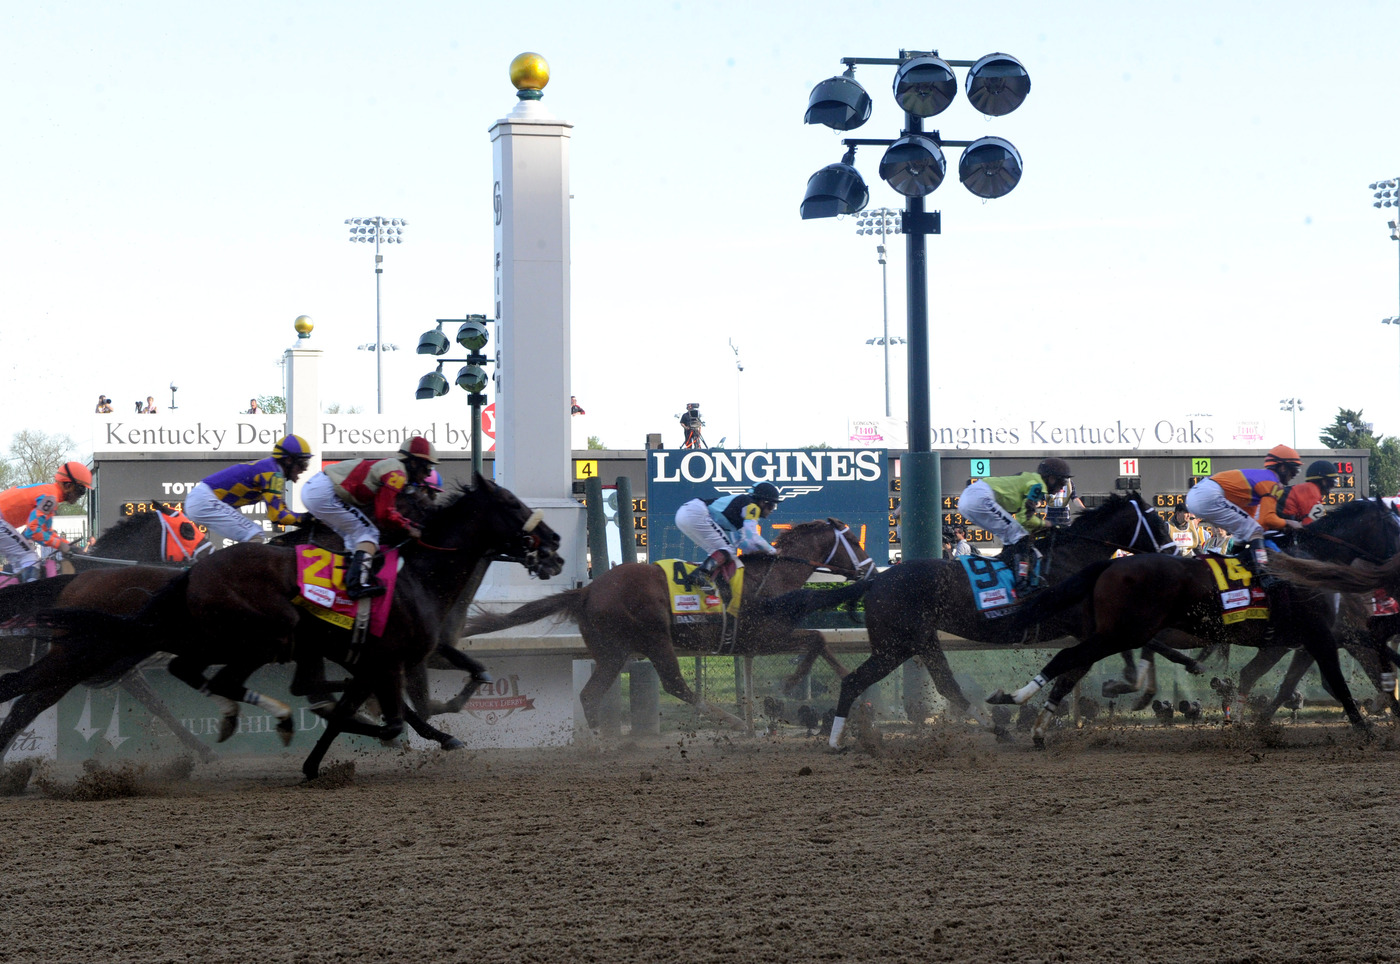 Longines Flat Racing Event: California Chrome wins the 140 Kentucky Derby 2